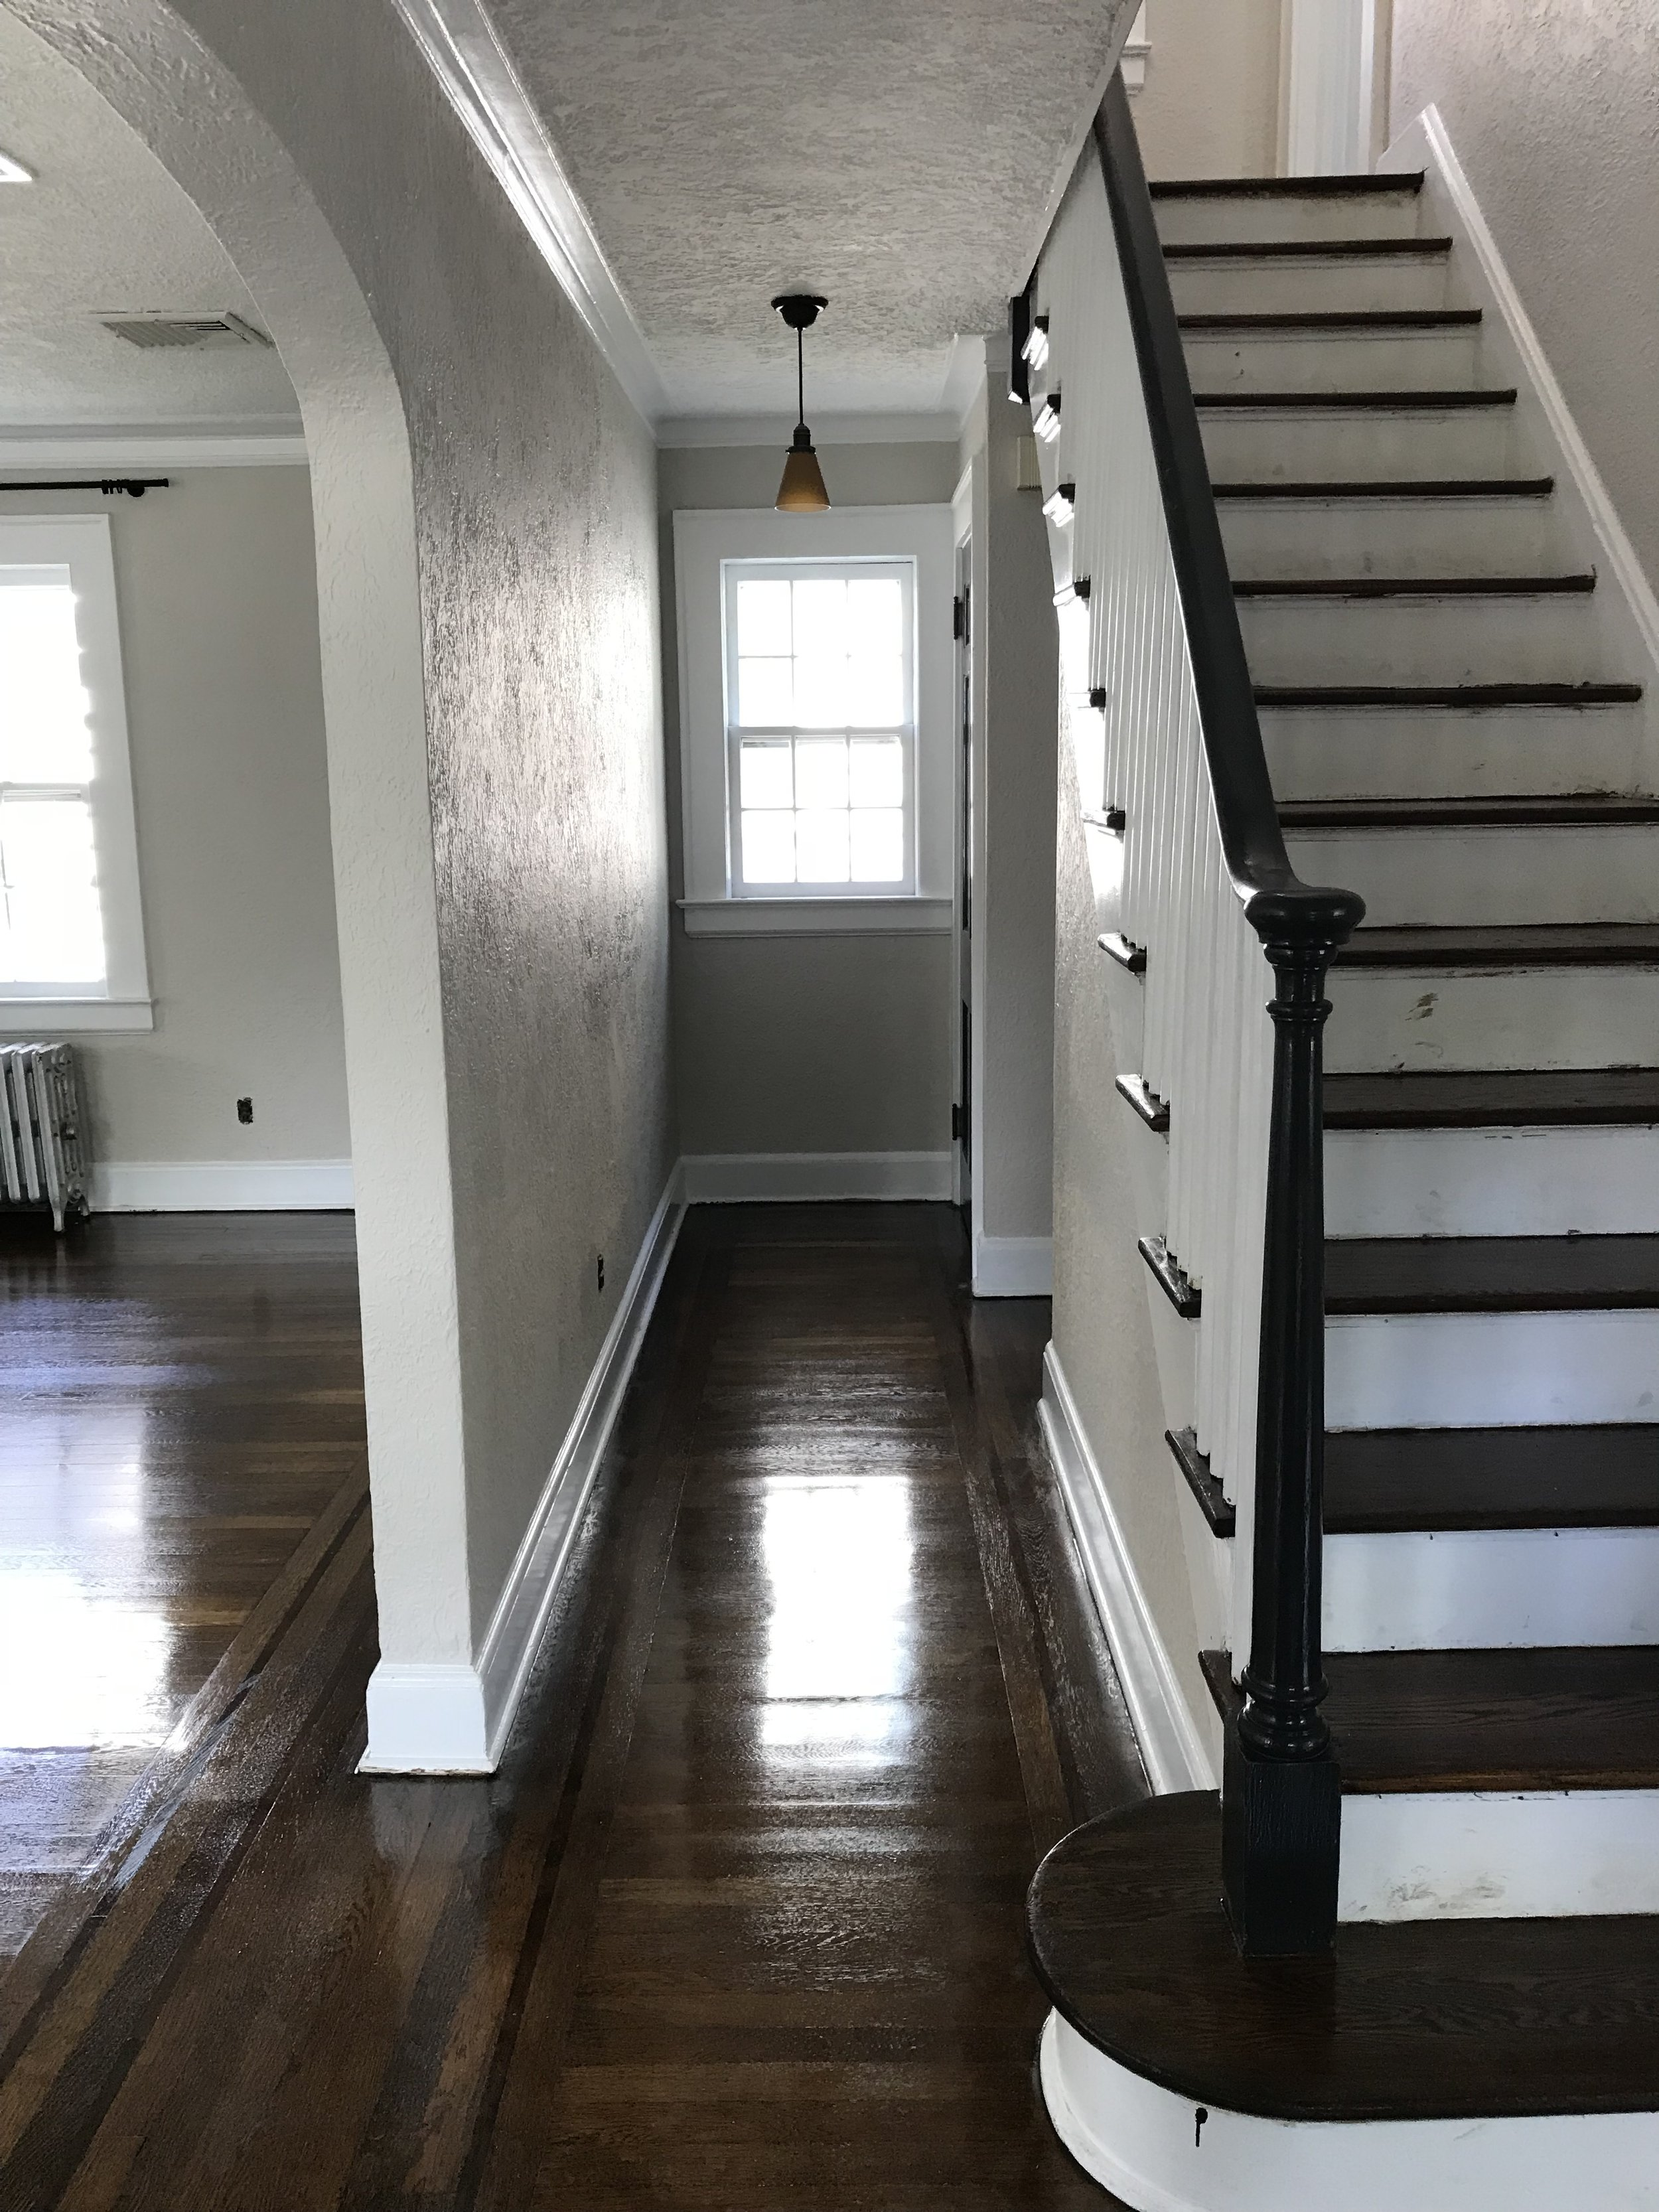 Post paint job and floor refinishing but pre-move in. I still can't get over these floors!